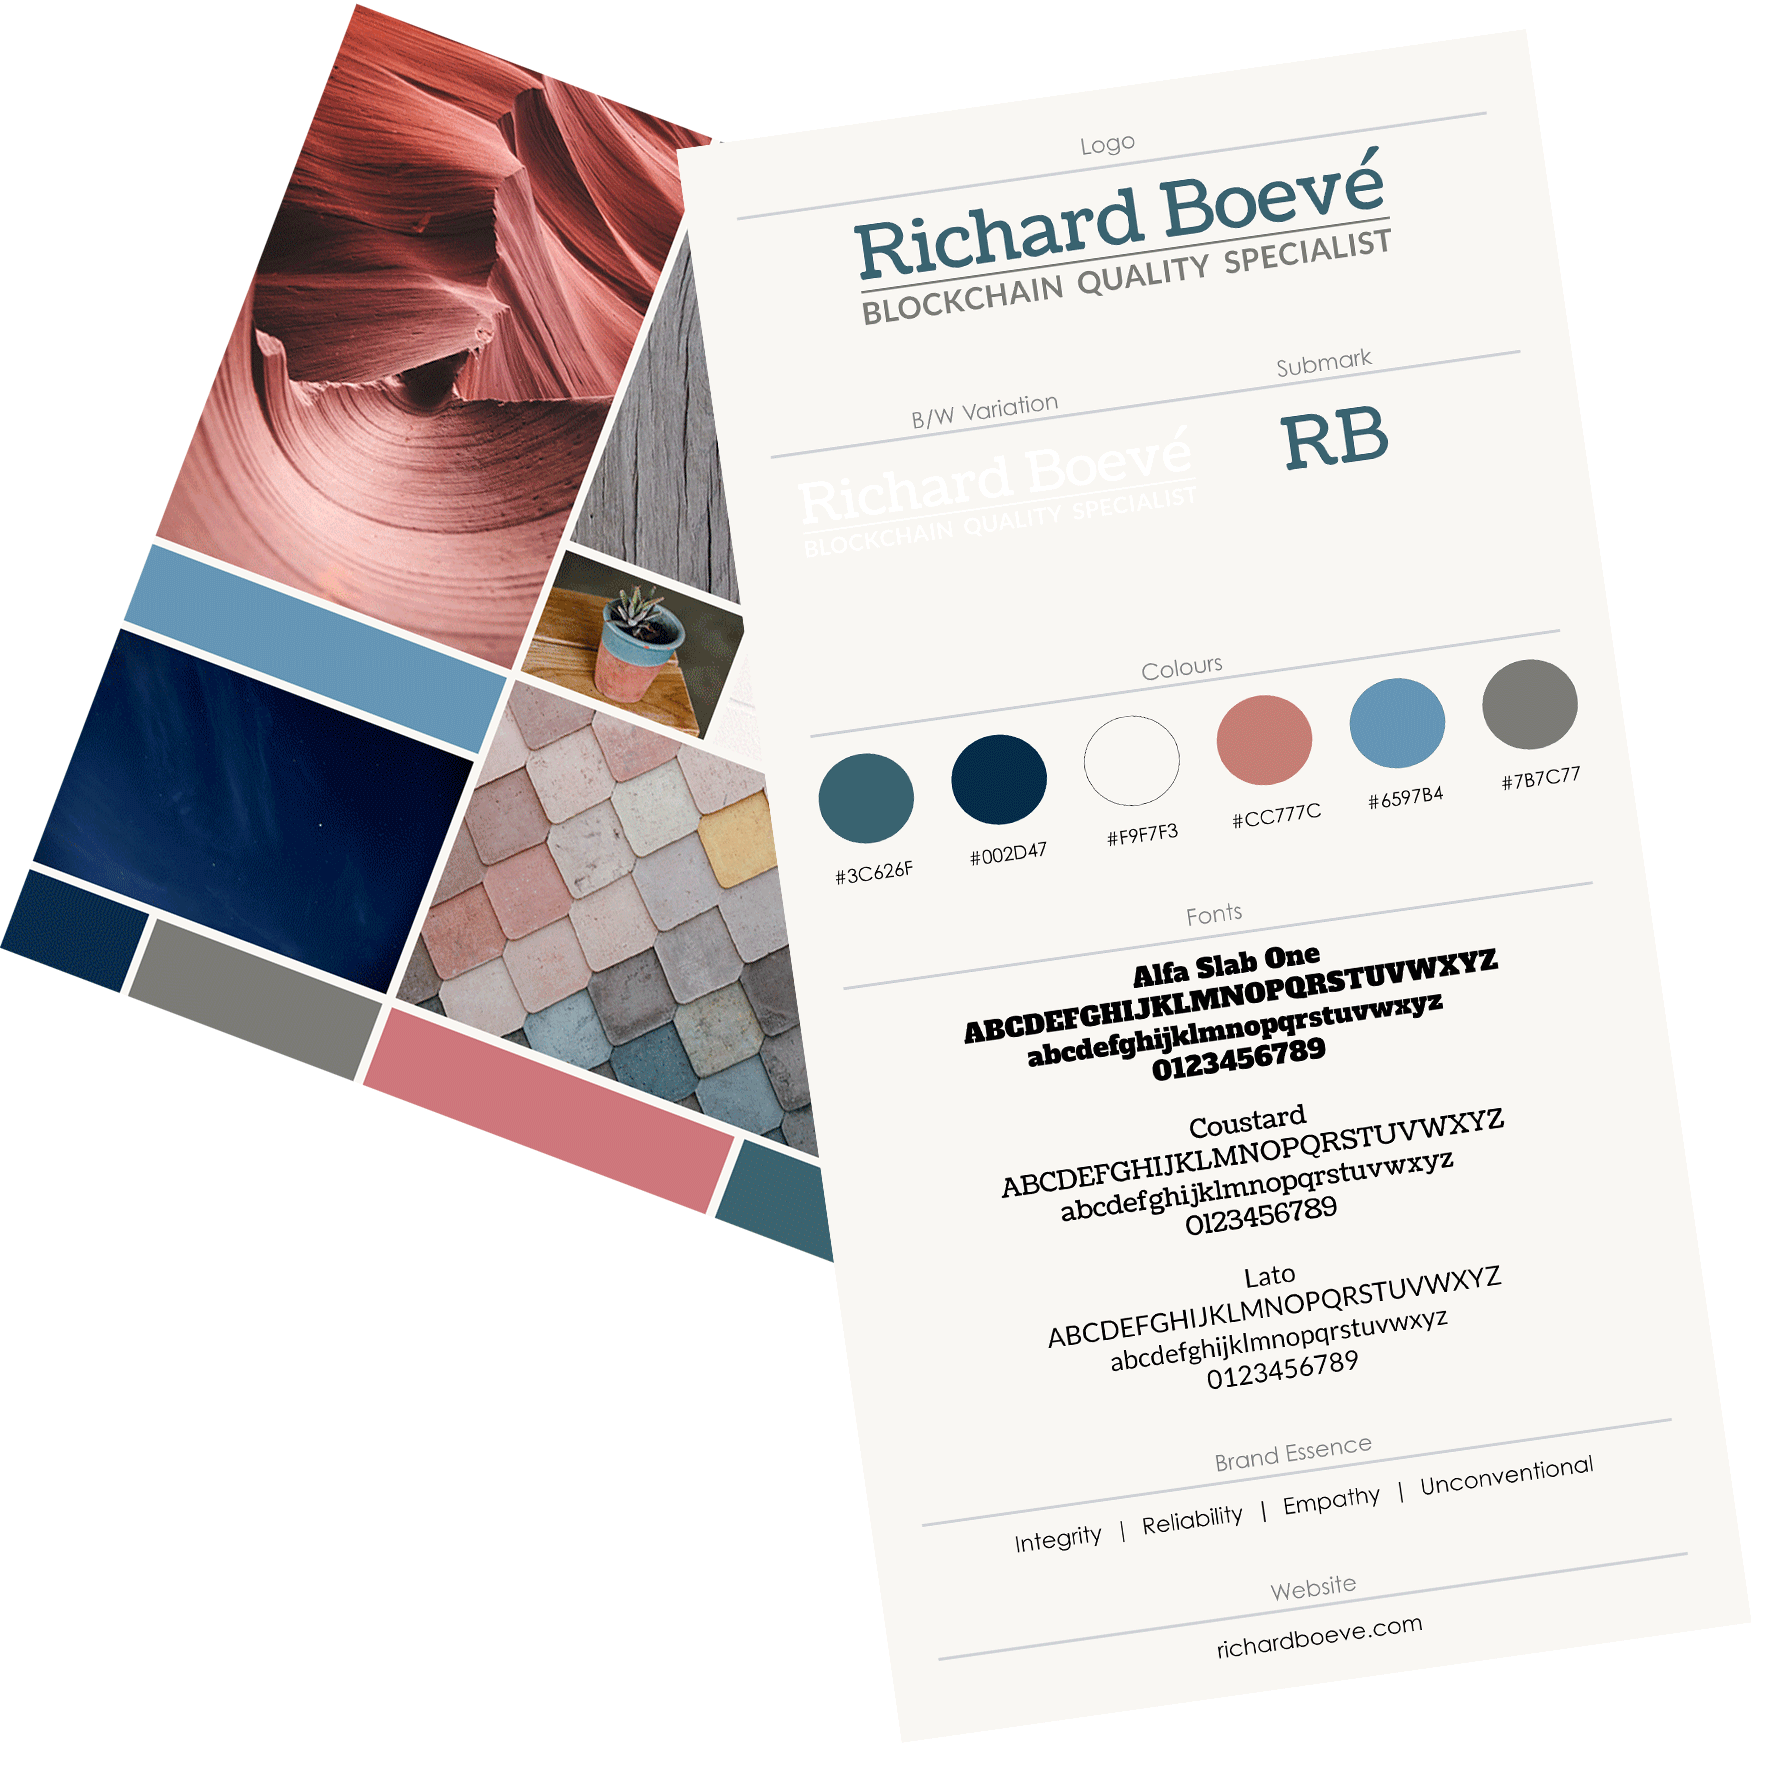 Brand Style - After a thorough review of Richard's unique strengths and values, where he wants to take his career and the competition in his field, we helped him clarify his unique brand essence that would both feel authentic and help him stand out.To capture Richard's brand essence visually,we developed a cool, professional color palette along with a combination of unconventional but structured fonts.